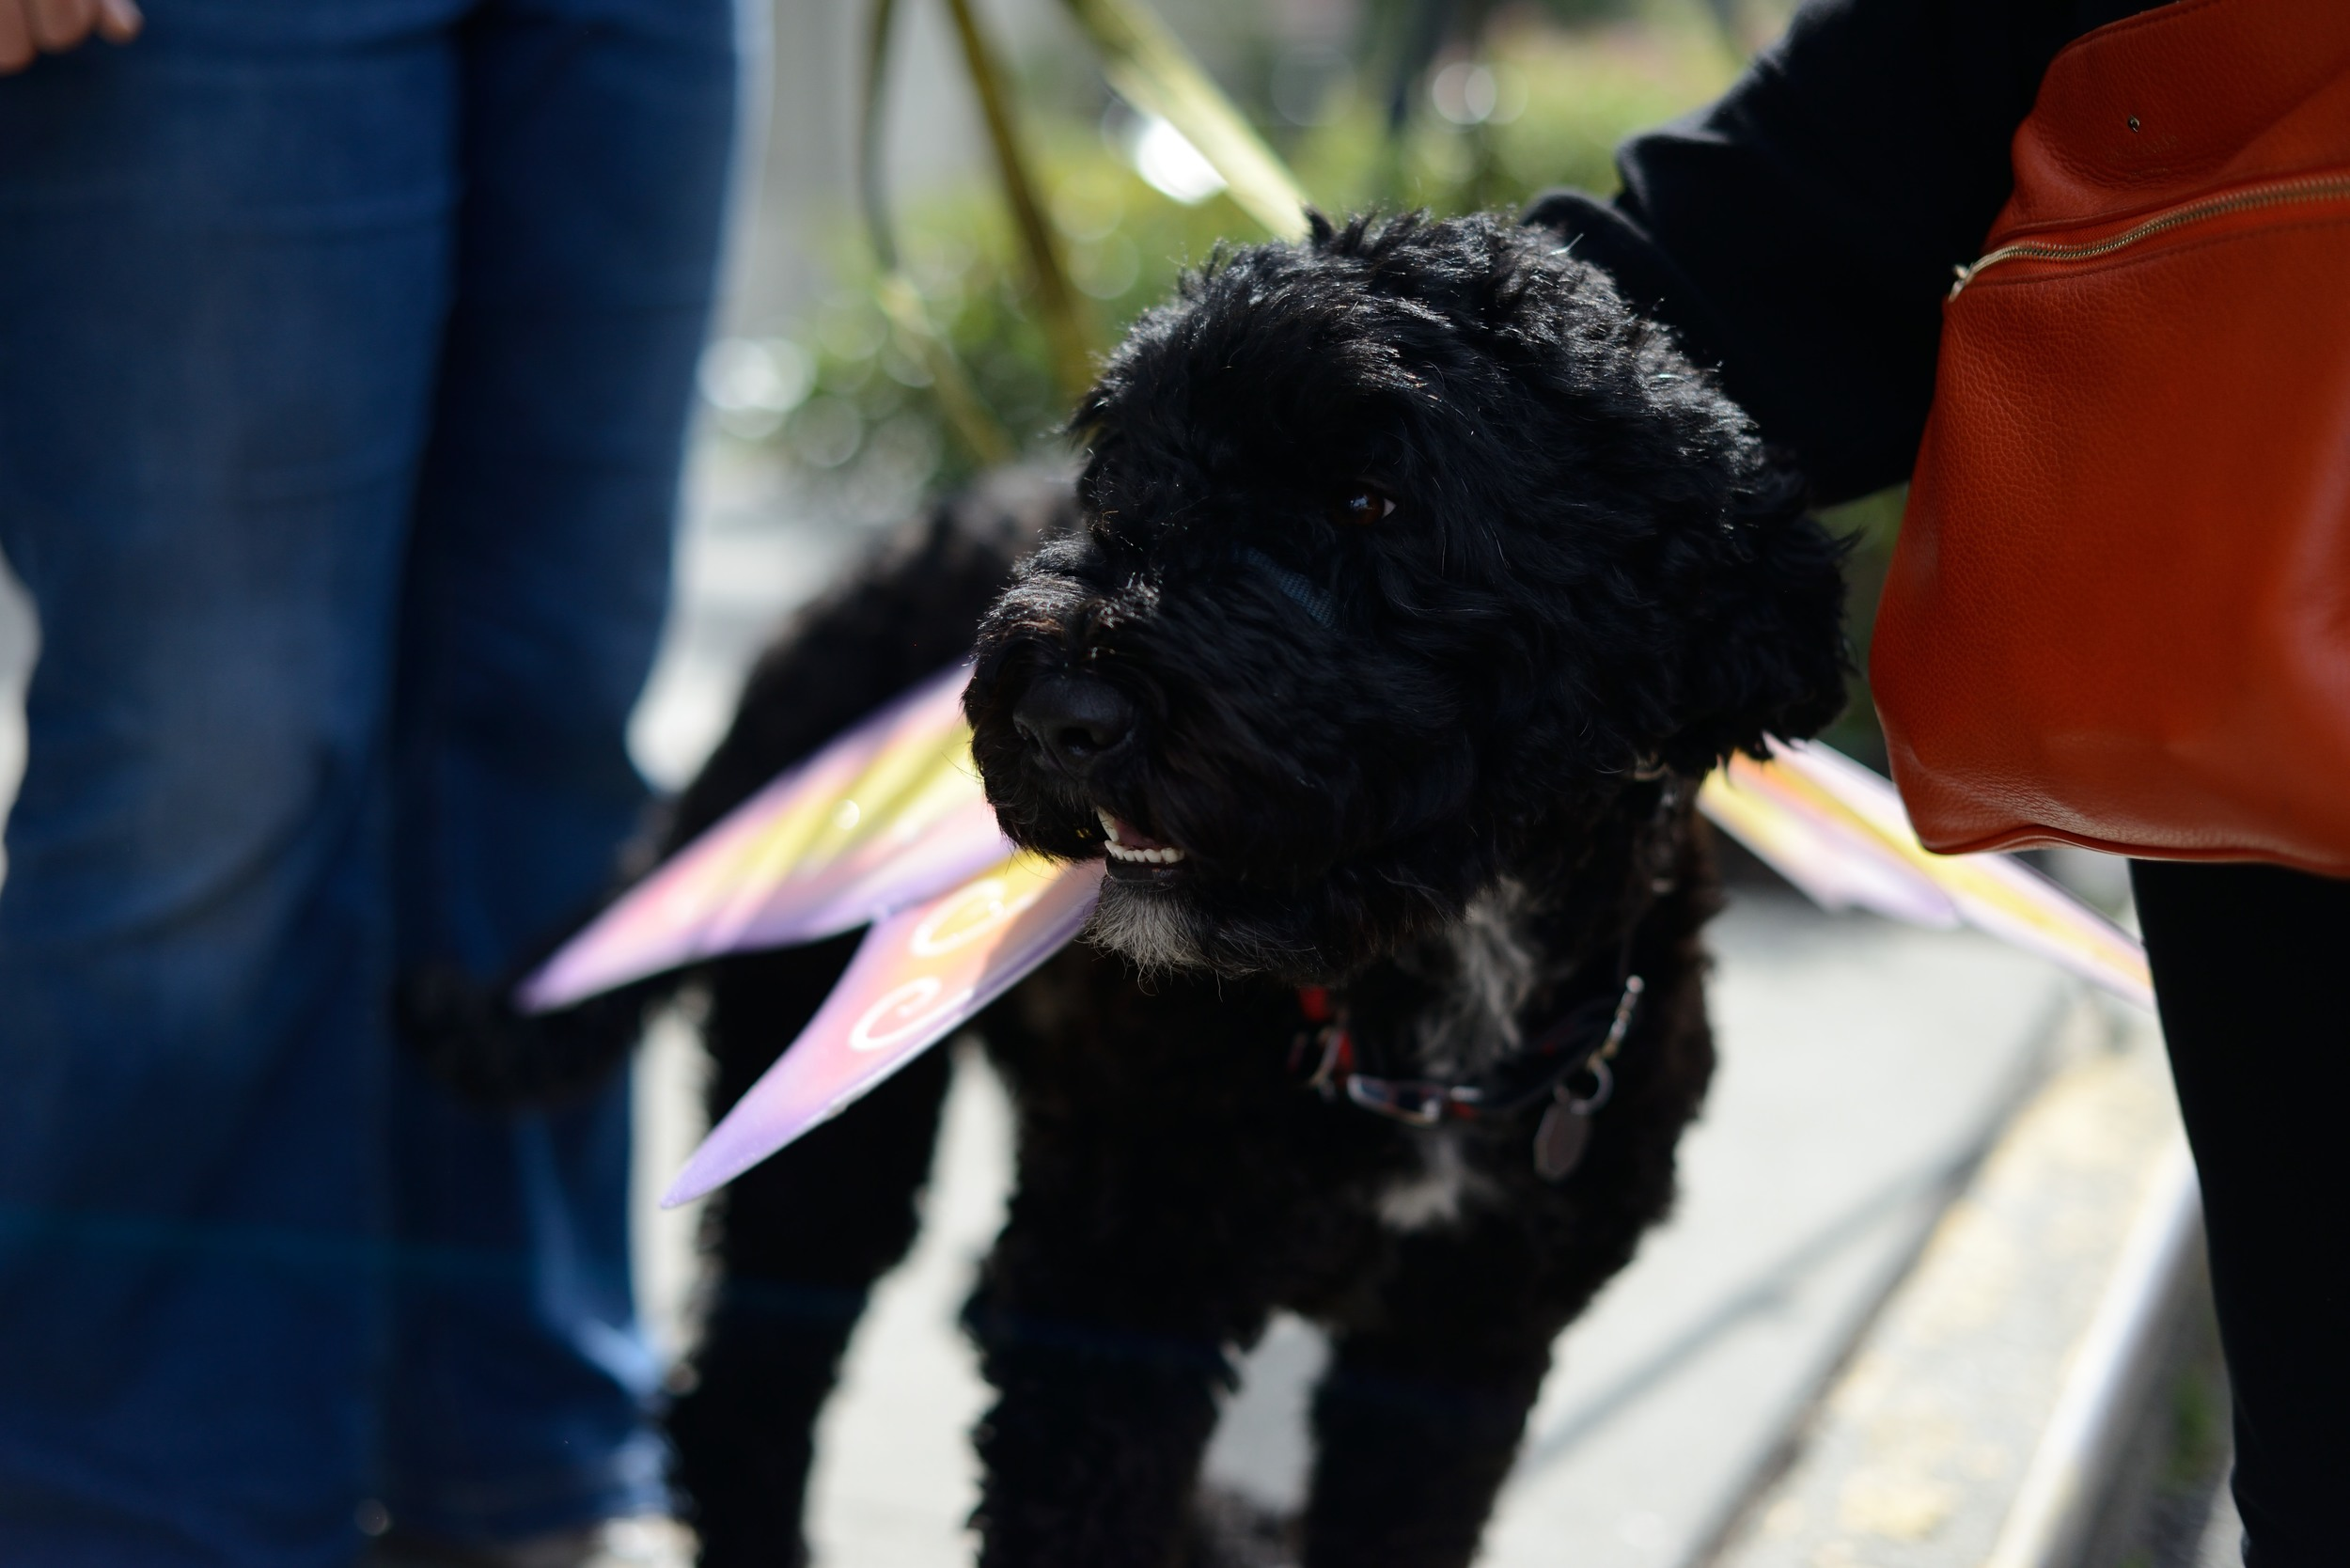 Even Goose, the office dog, gets in the pollinator spirit with butterfly wings.